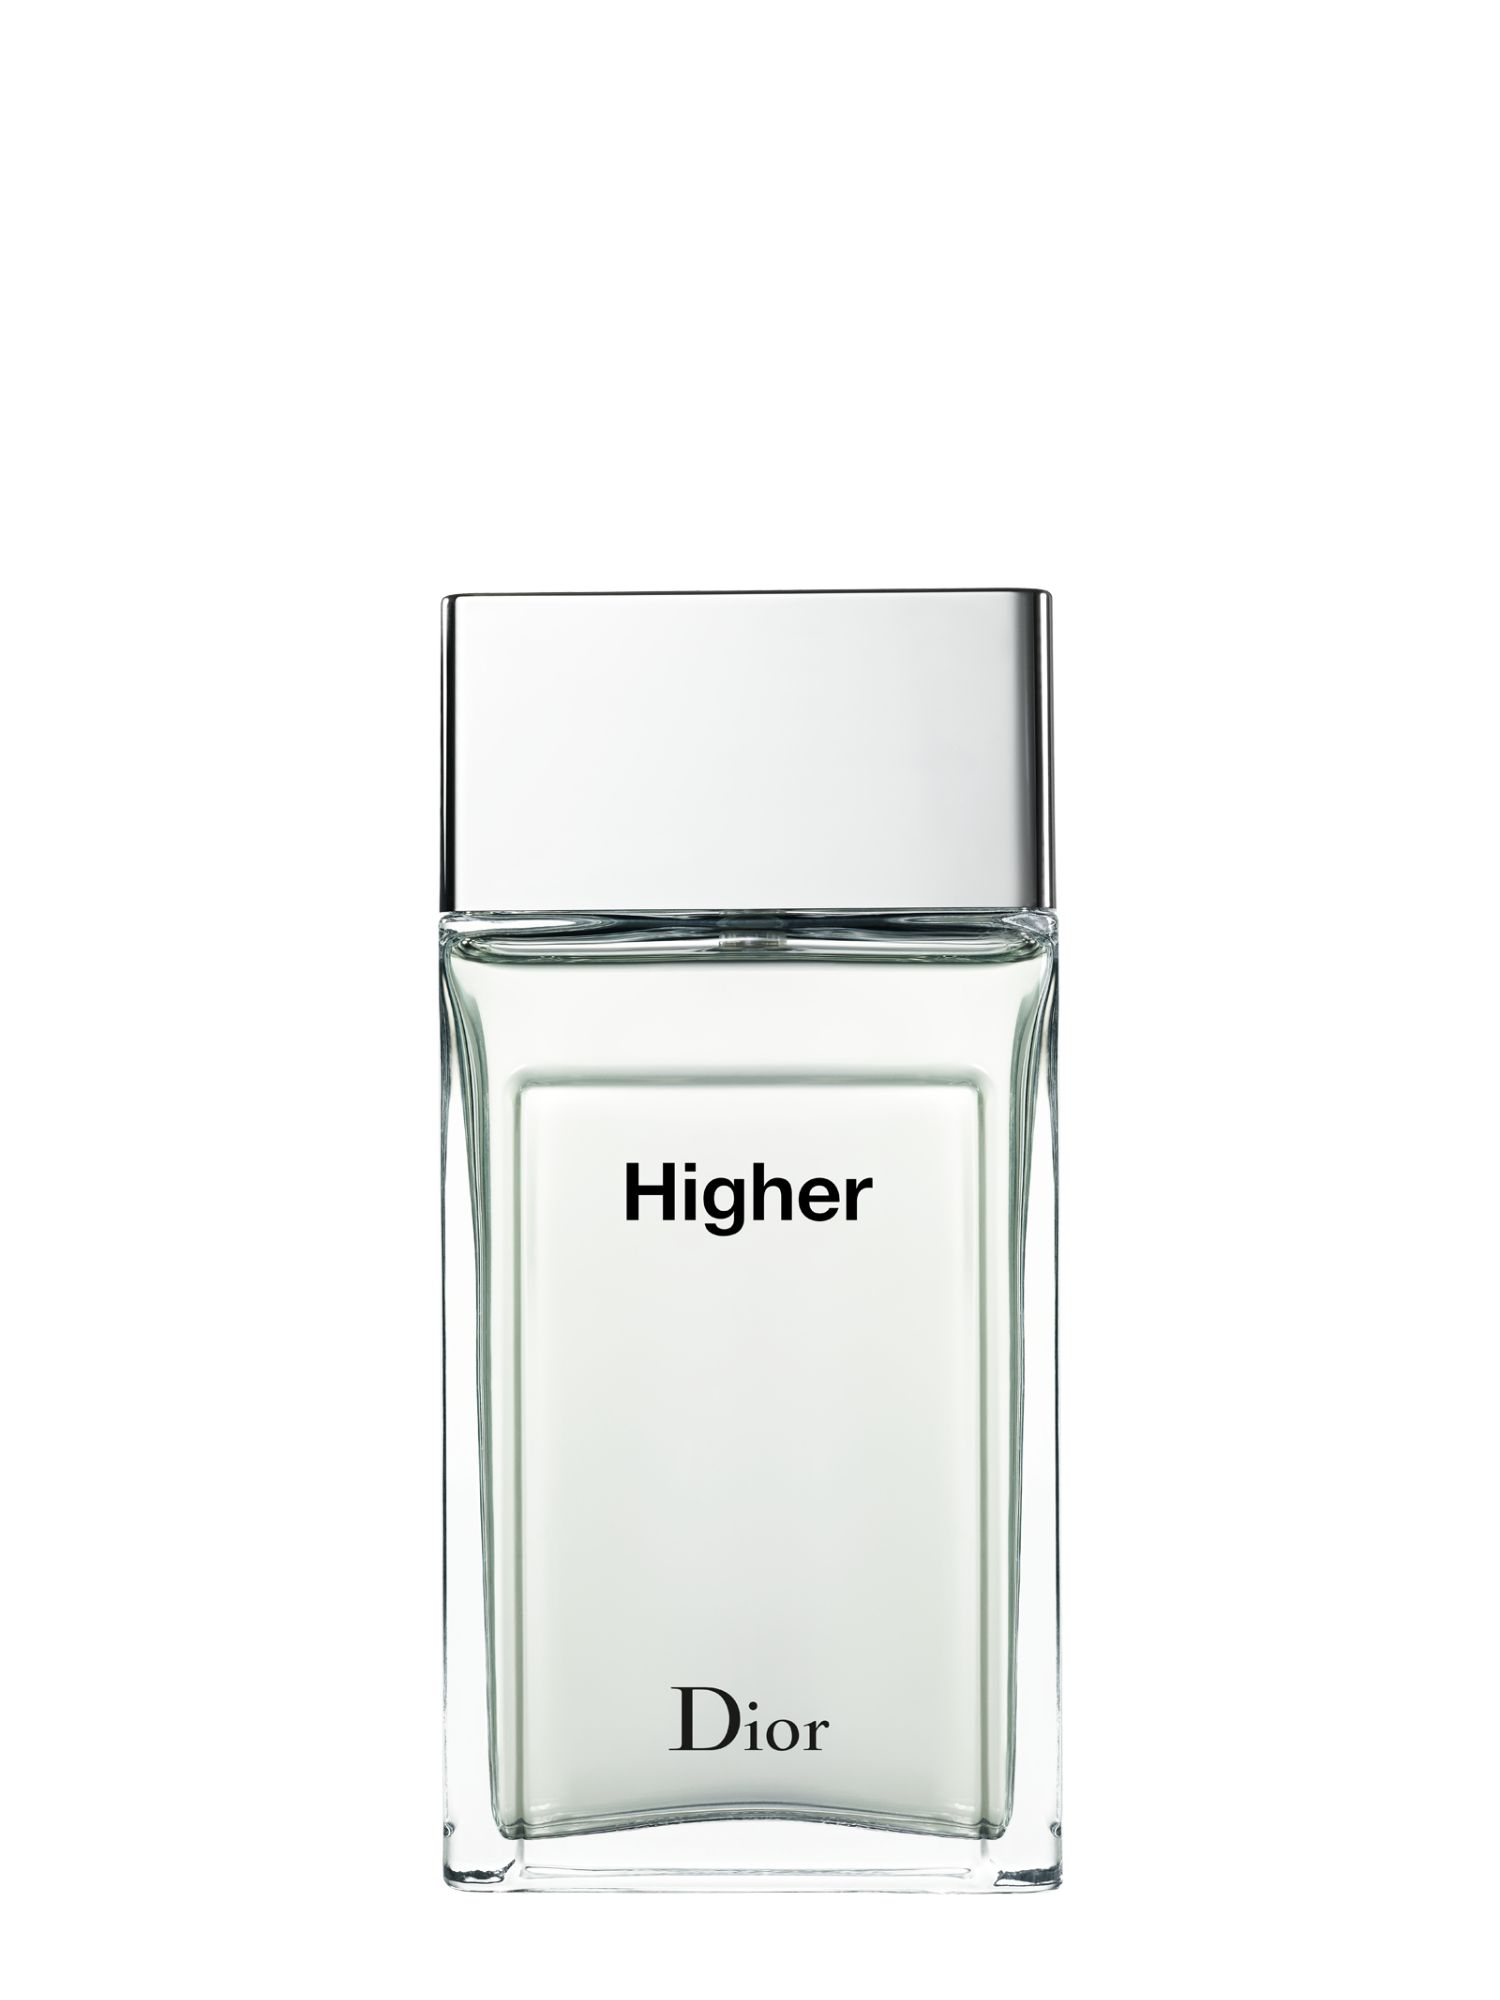 Higher Eau de Toilette 100ml